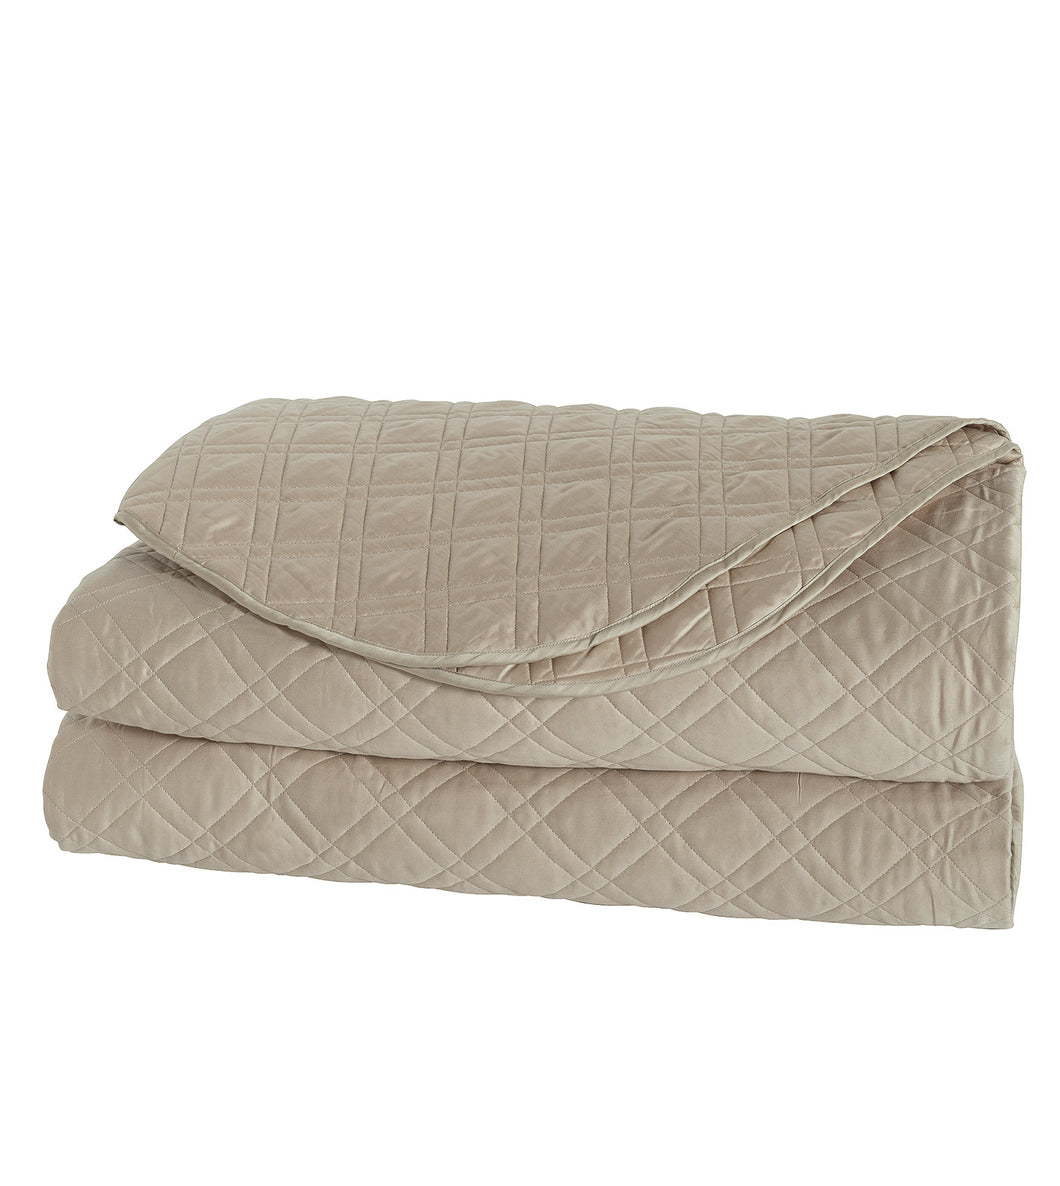 Beige Geometric Rustic 100% Egyptian Cotton Coverlet